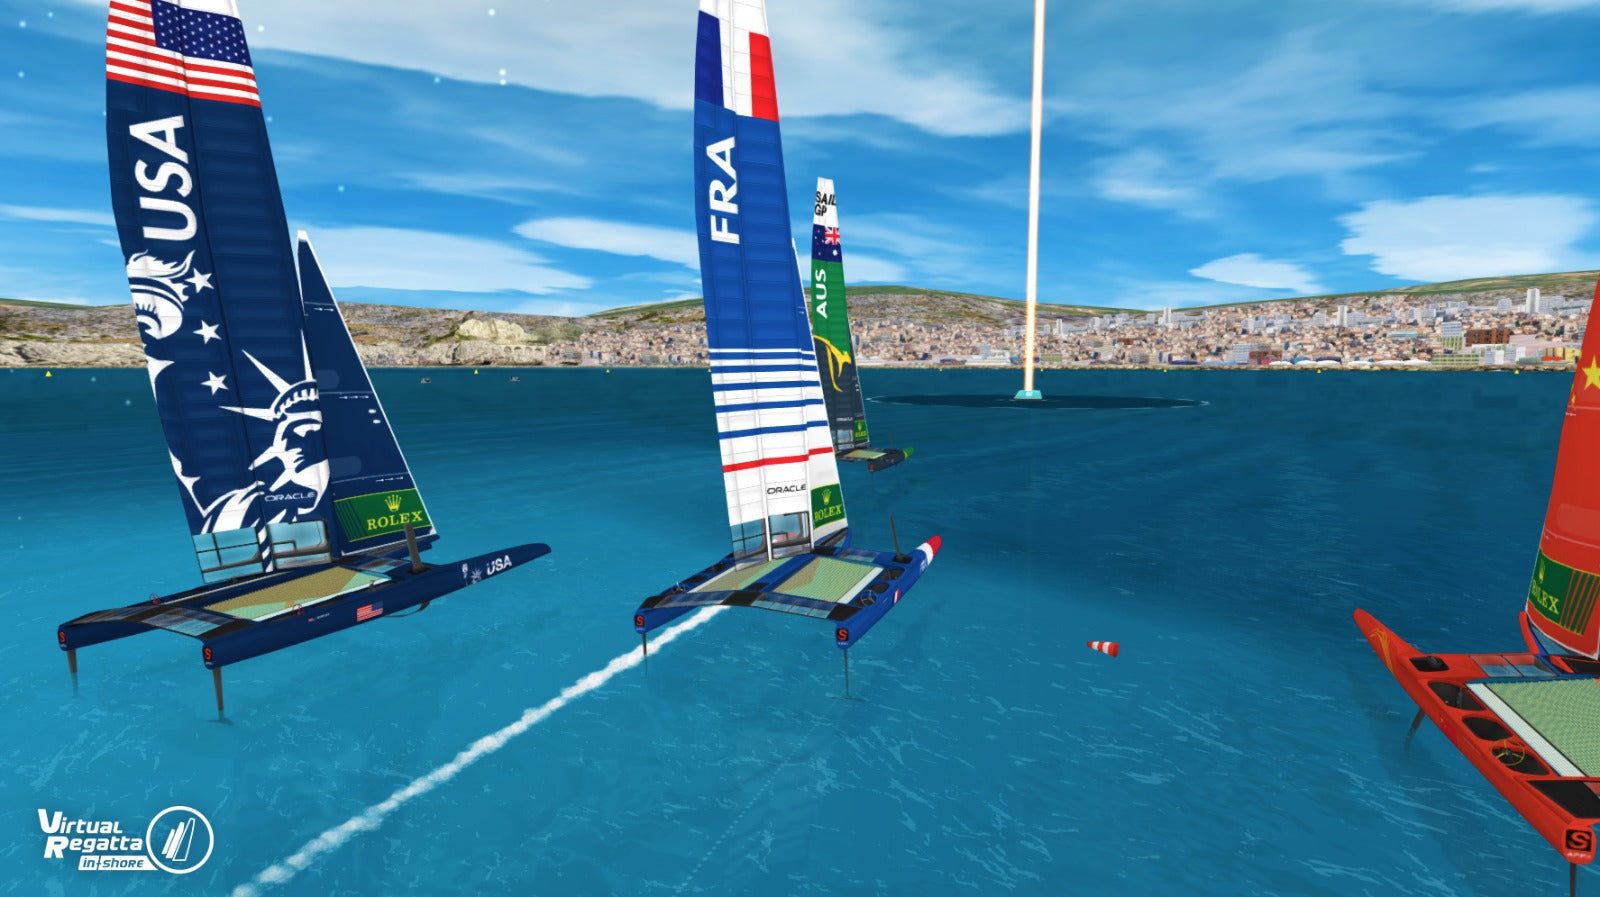 Digital Sailing on Virtual Regatta